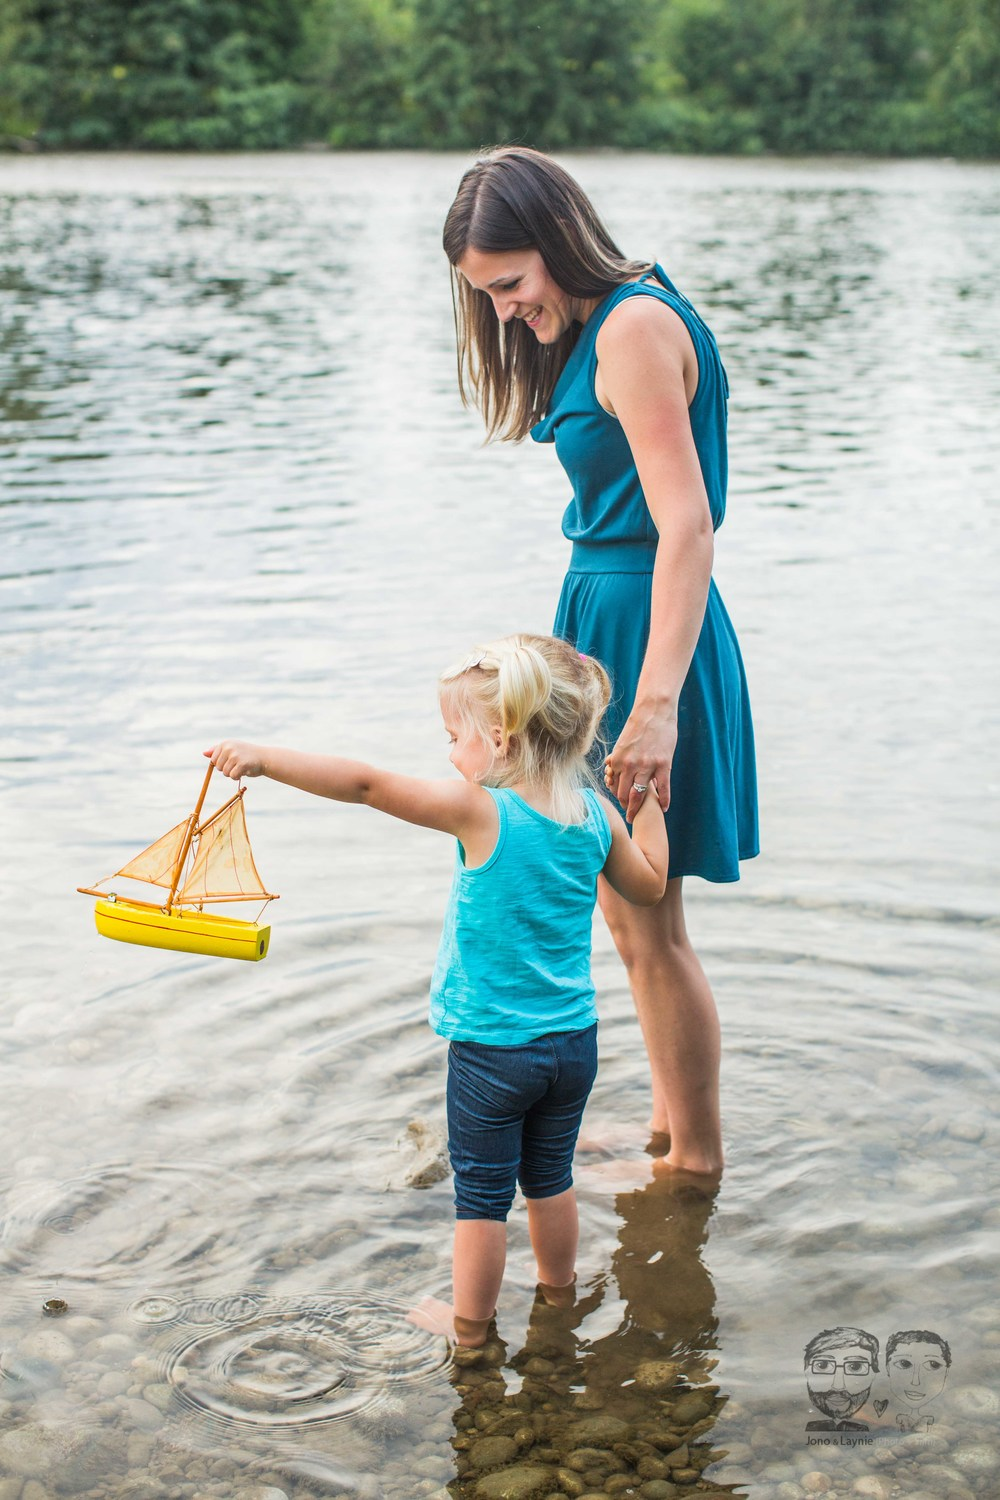 040Mommy and me- Lifestyle Photographers-Jono & Laynie Co.jpg